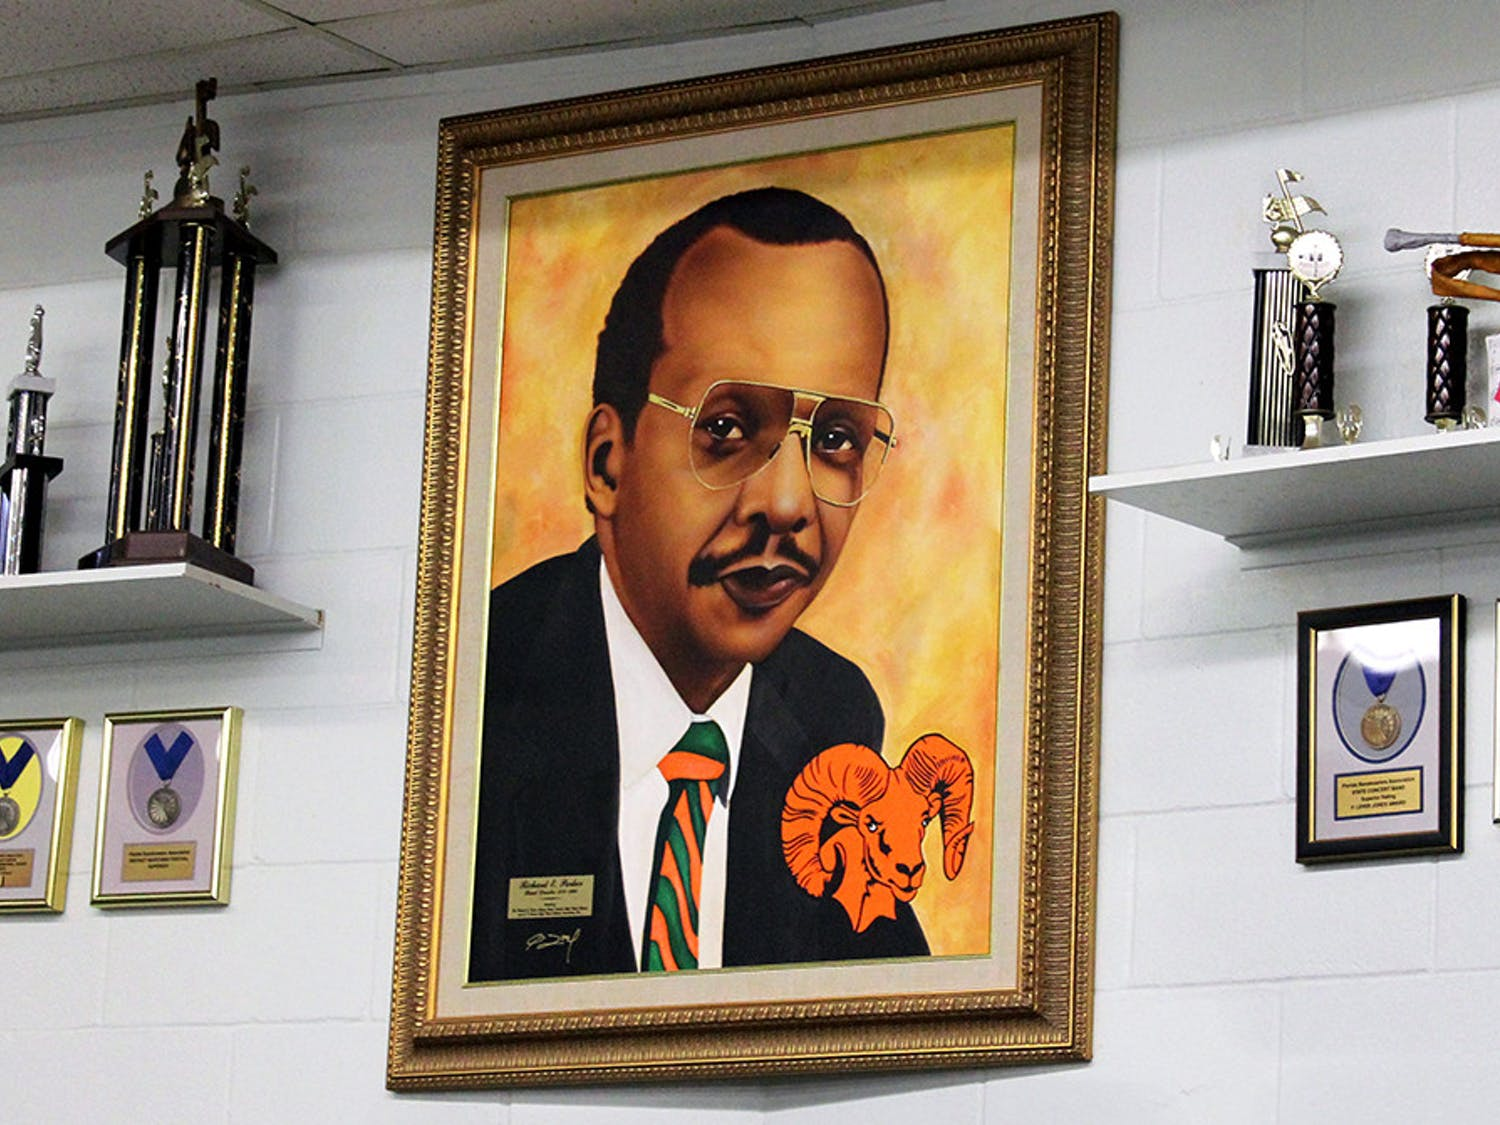 A portrait of former band director Richard E. Parker hangs inside the band room at Eastside High School on Friday, Feb. 12, 2021. Parker was the Eastside marching band director from 1970 to 1990.